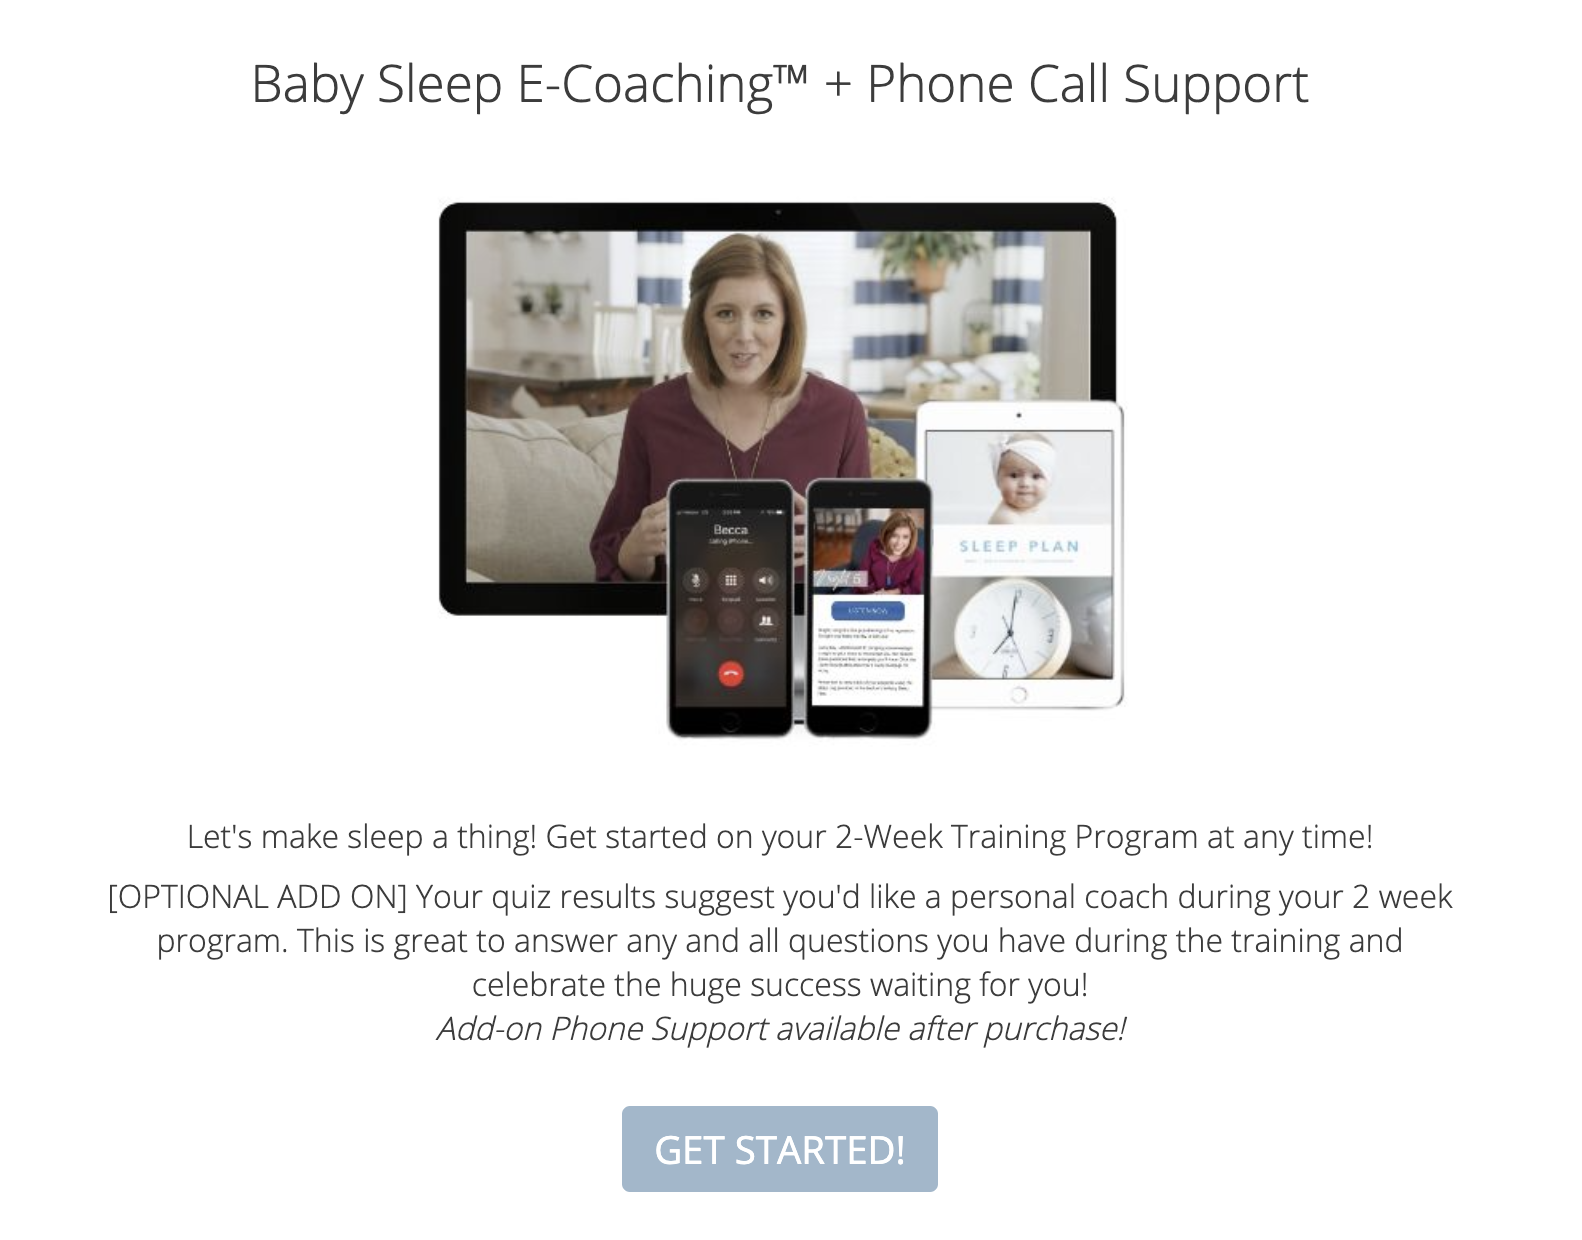 Sales page for Baby Sleep E-Coaching and Phone Call Support